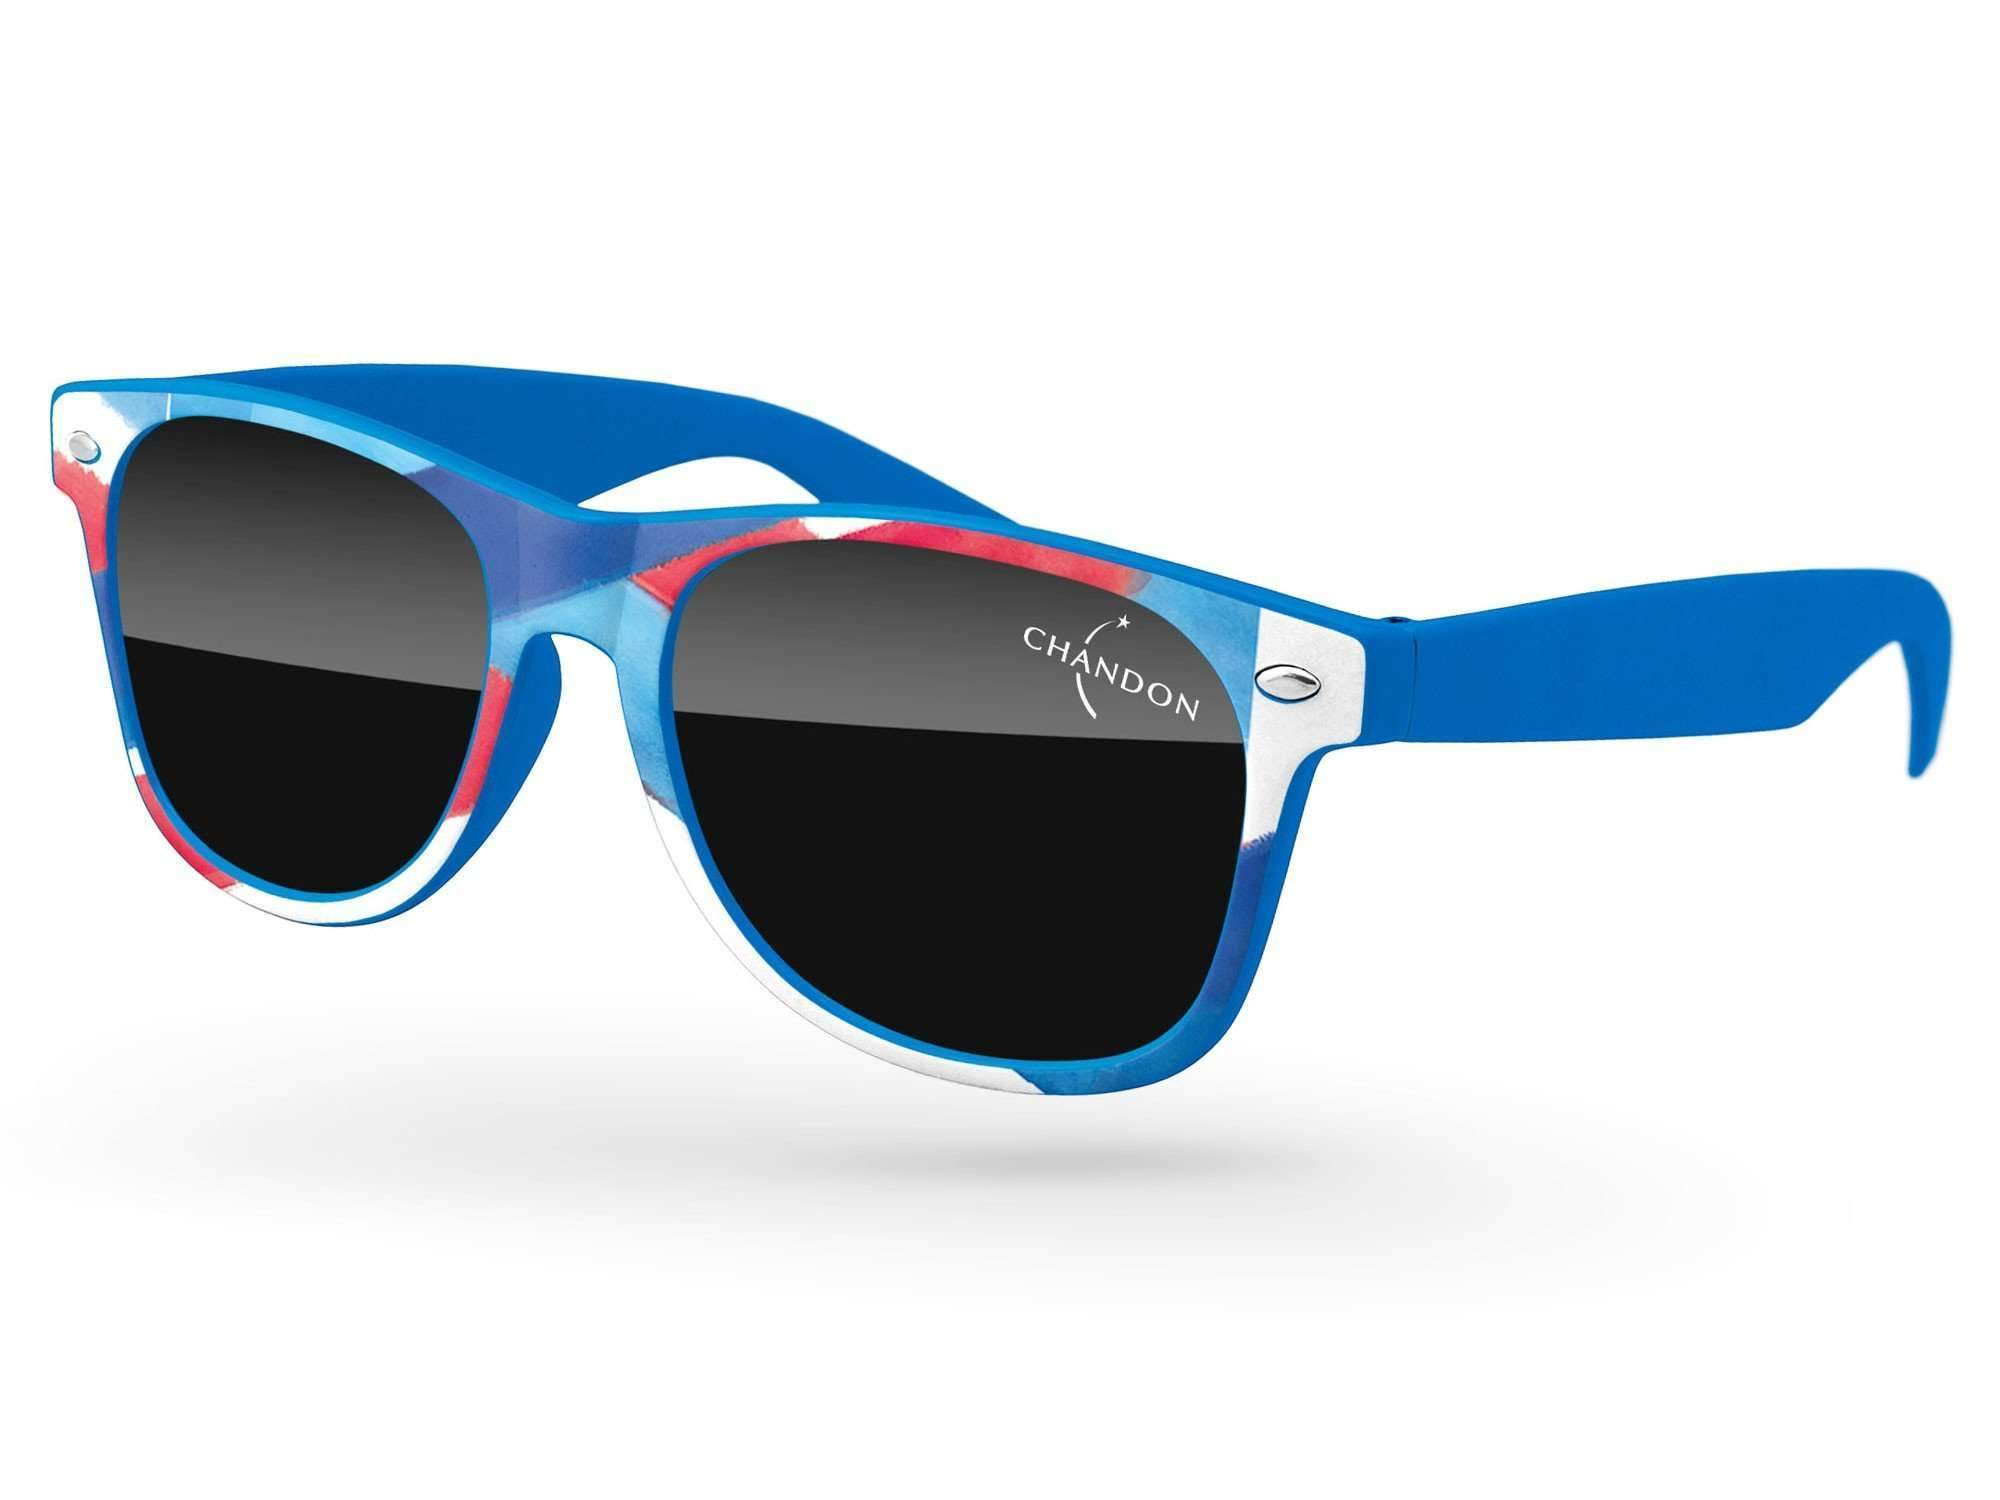 RD540 - Retro Promotional Sunglasses w/ 1-color temple imprint & full-color front-frame heat transfer